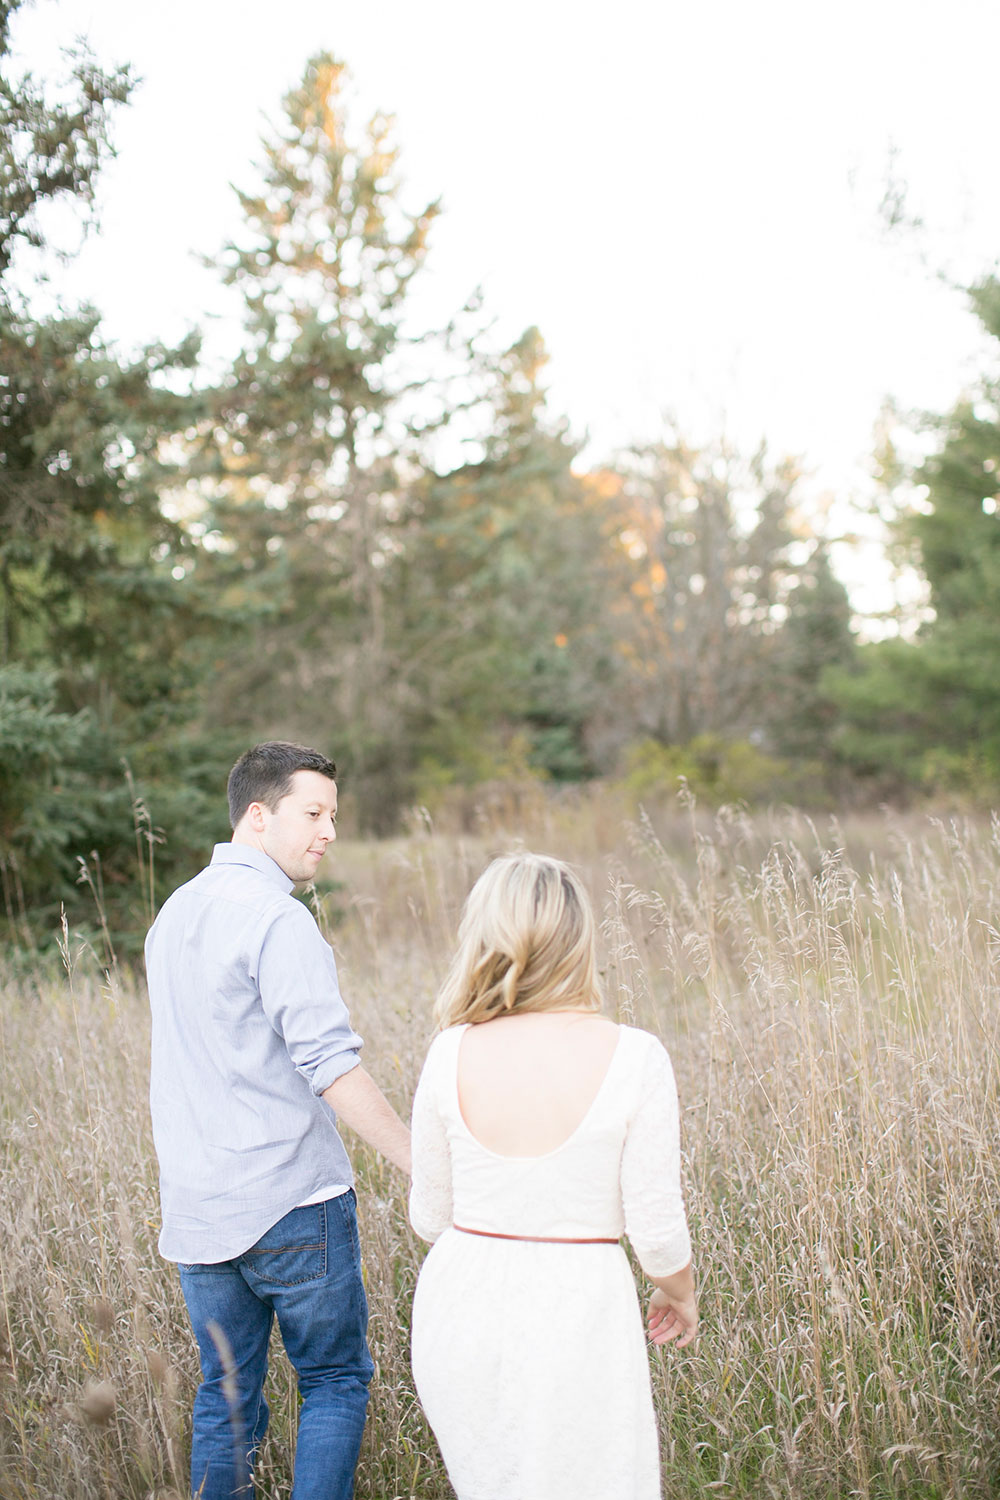 Albion-Hills-Conservation-Park-engagement-session-caledon-photo-by-philosophy-studios-eva-derrick-photography-014.jpg